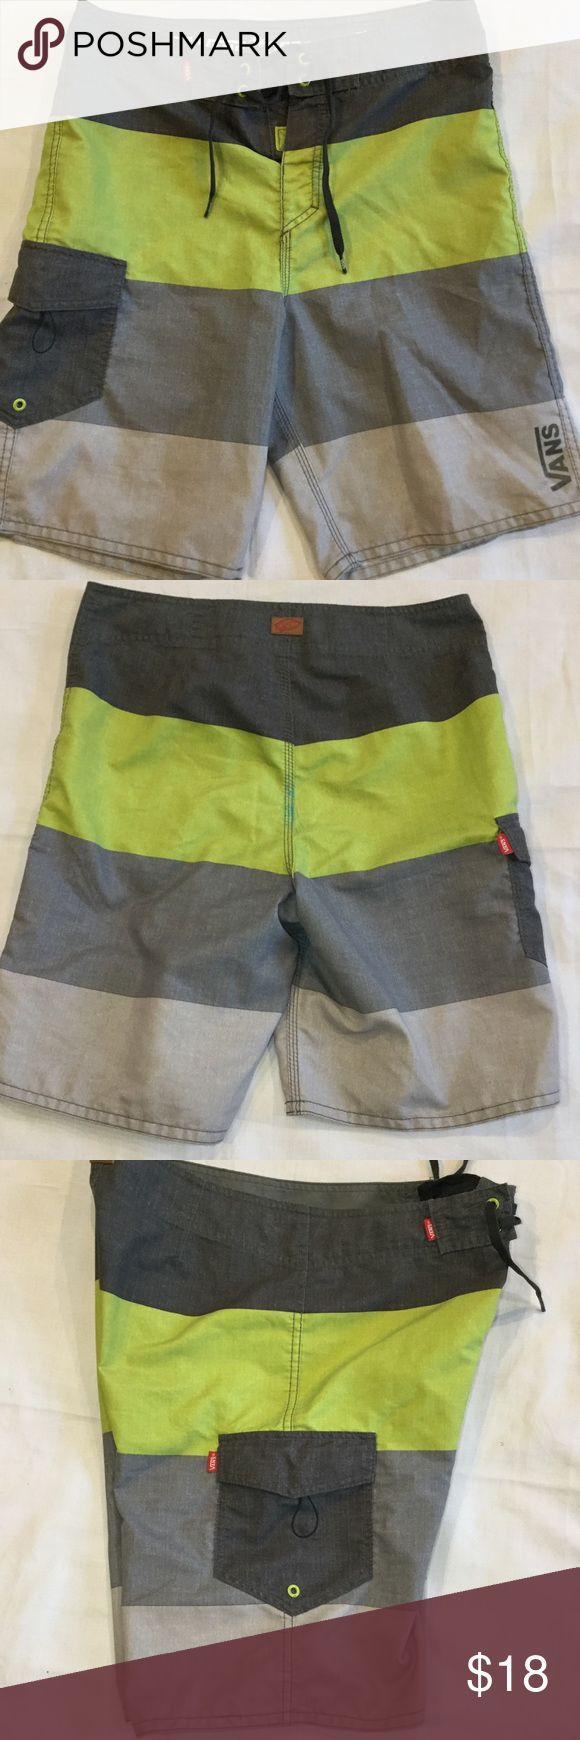 VANS Board Shorts Off The Wall Swim Trunks Mens Vans Board Shorts Off The Wall Swim Trunks Gray Neon Lime.Awesome pair of Men's board shorts by VANS! They are gray & neon lime striped. VANS label on the side and front bottom. Velcro & tie closure Side pocket with velcro This Item have been Worn but has no visible signs of wear in Excellent Condition. Vans Swim Board Shorts